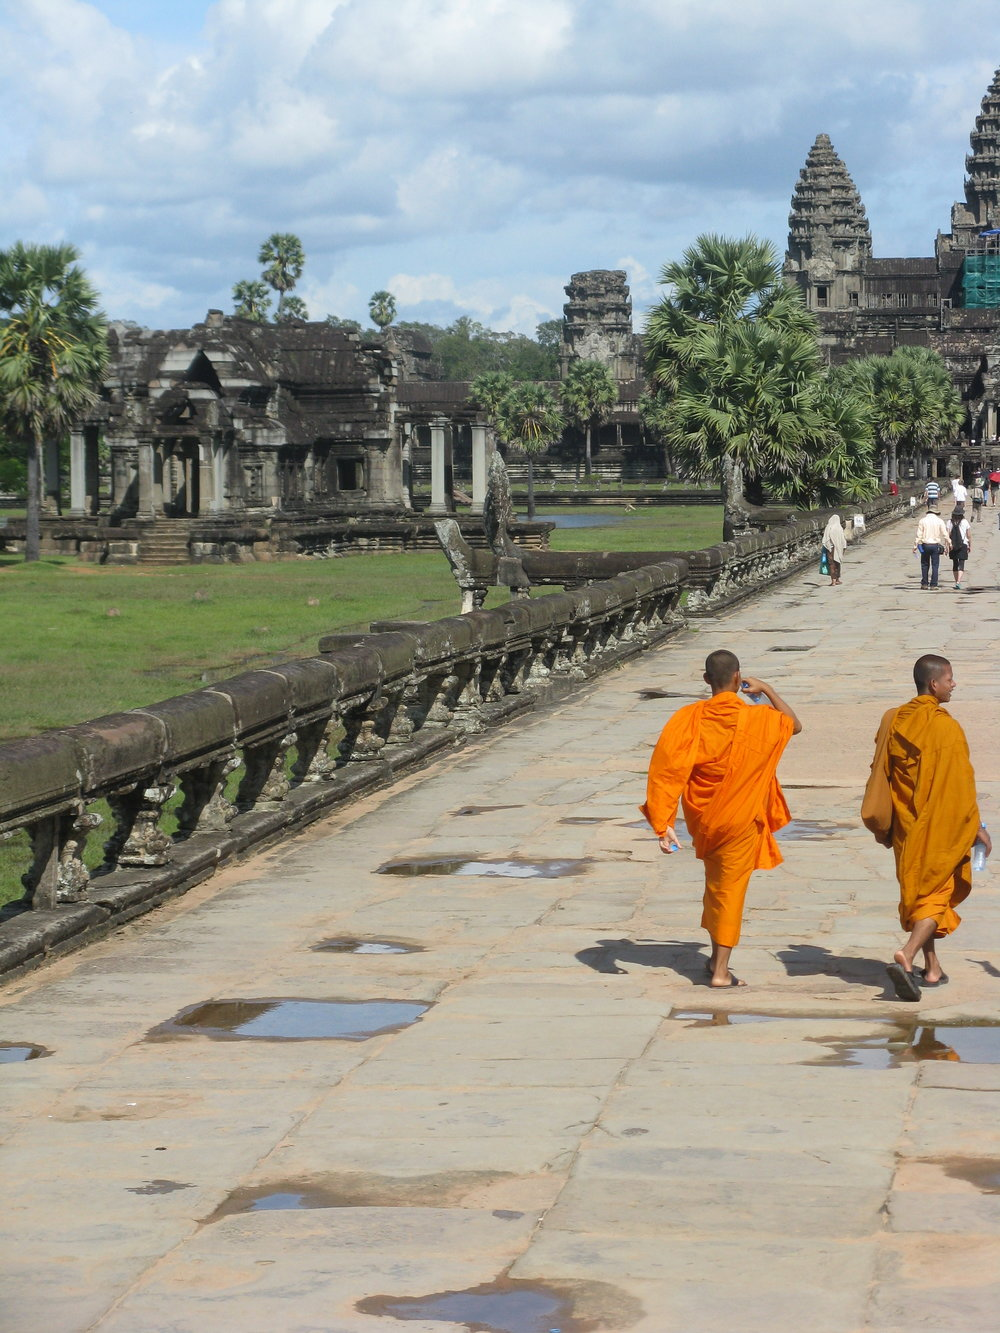 Buddhist monks in saffron robes cross the bridge that leads to the giant temple